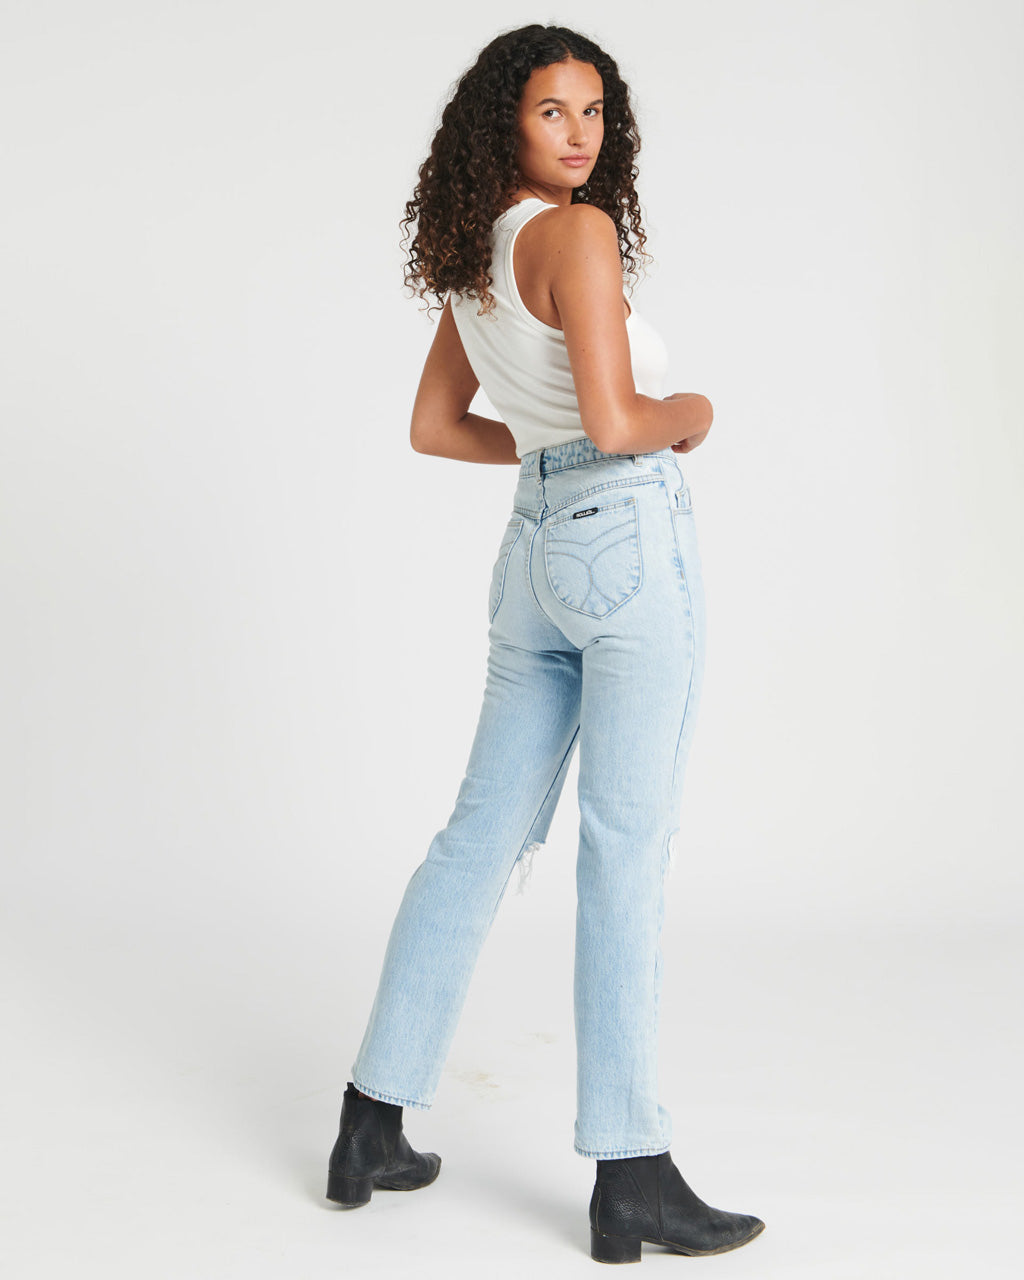 model wearing white tank top with lightwash worn jeans with black boots